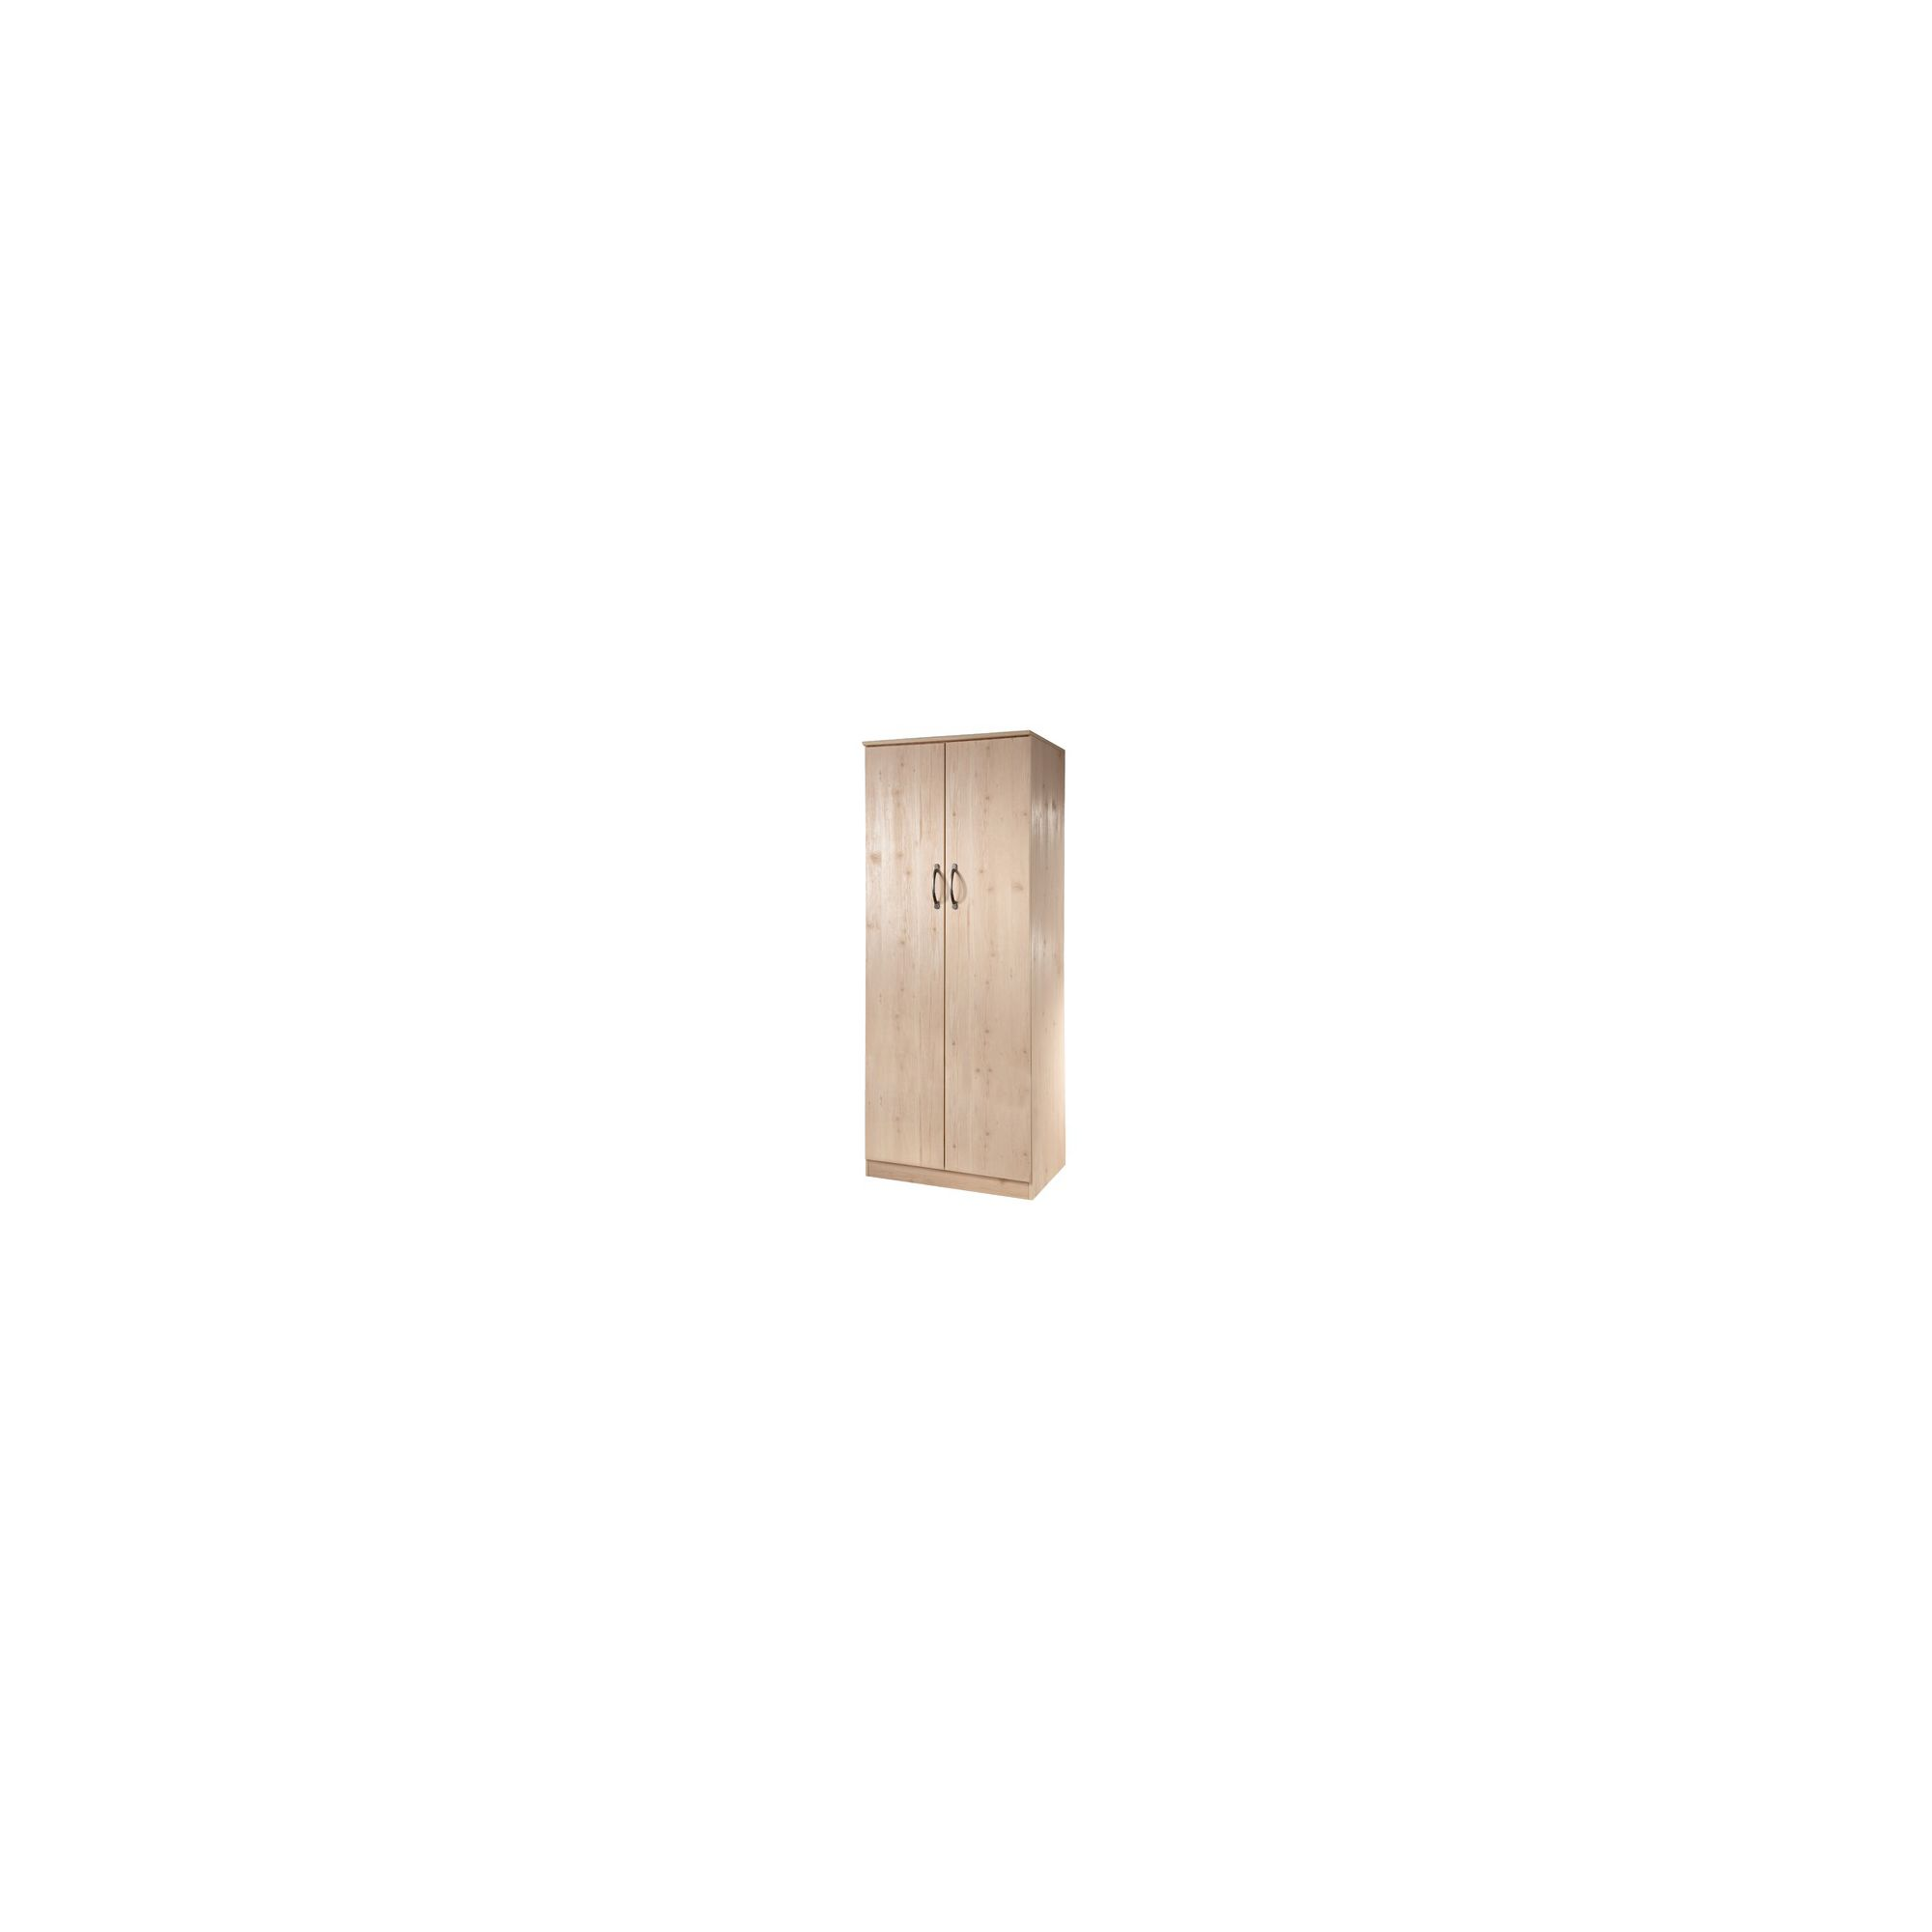 Welcome Furniture Florida Plain Wardrobe - 182.5cm H x 95.5cm W at Tesco Direct